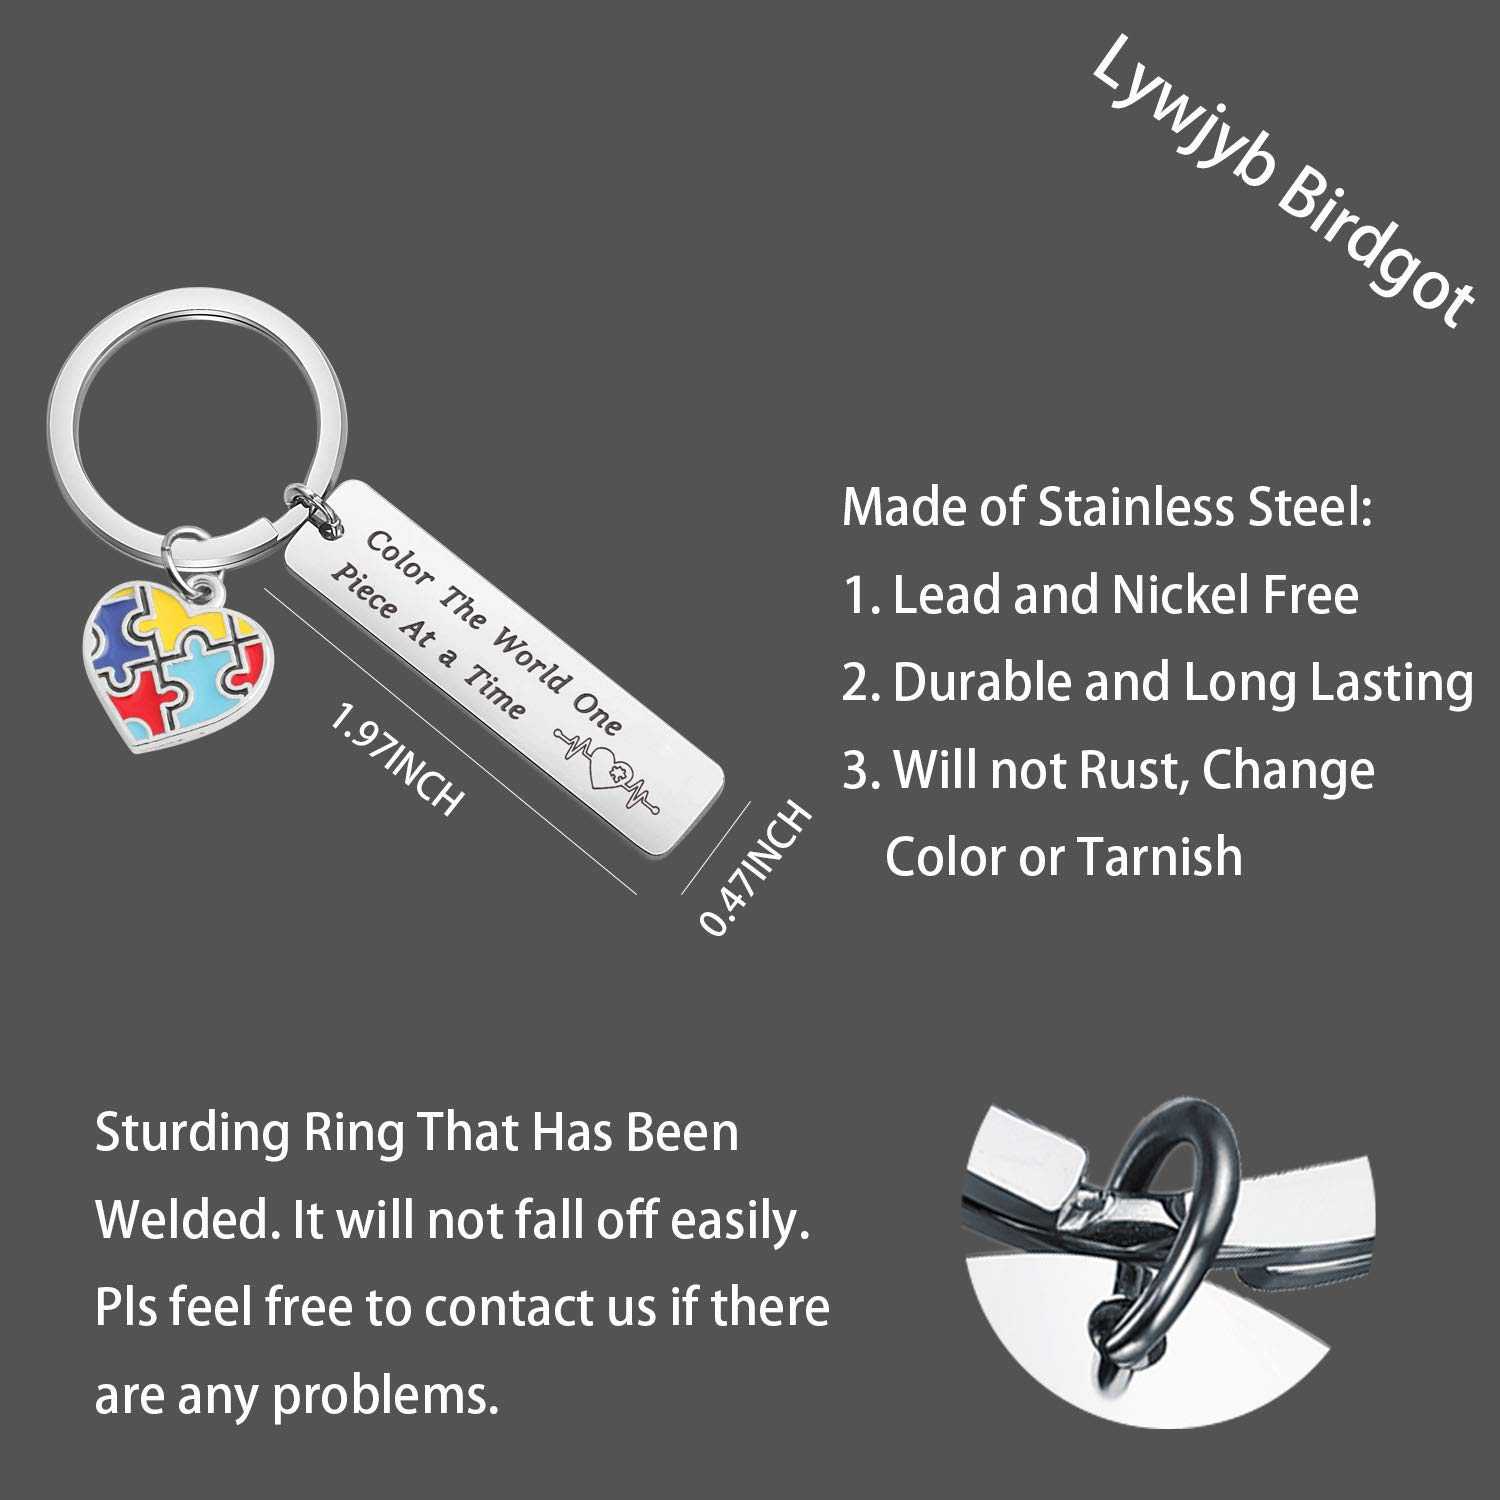 Lywjyb Birdgot Autism Moms Gift Autism Awareness Keychain Autism Speaks Gift Autism Support Gift Color The World One Piece at A Time Keychain Autistic Pride Gift for Mom